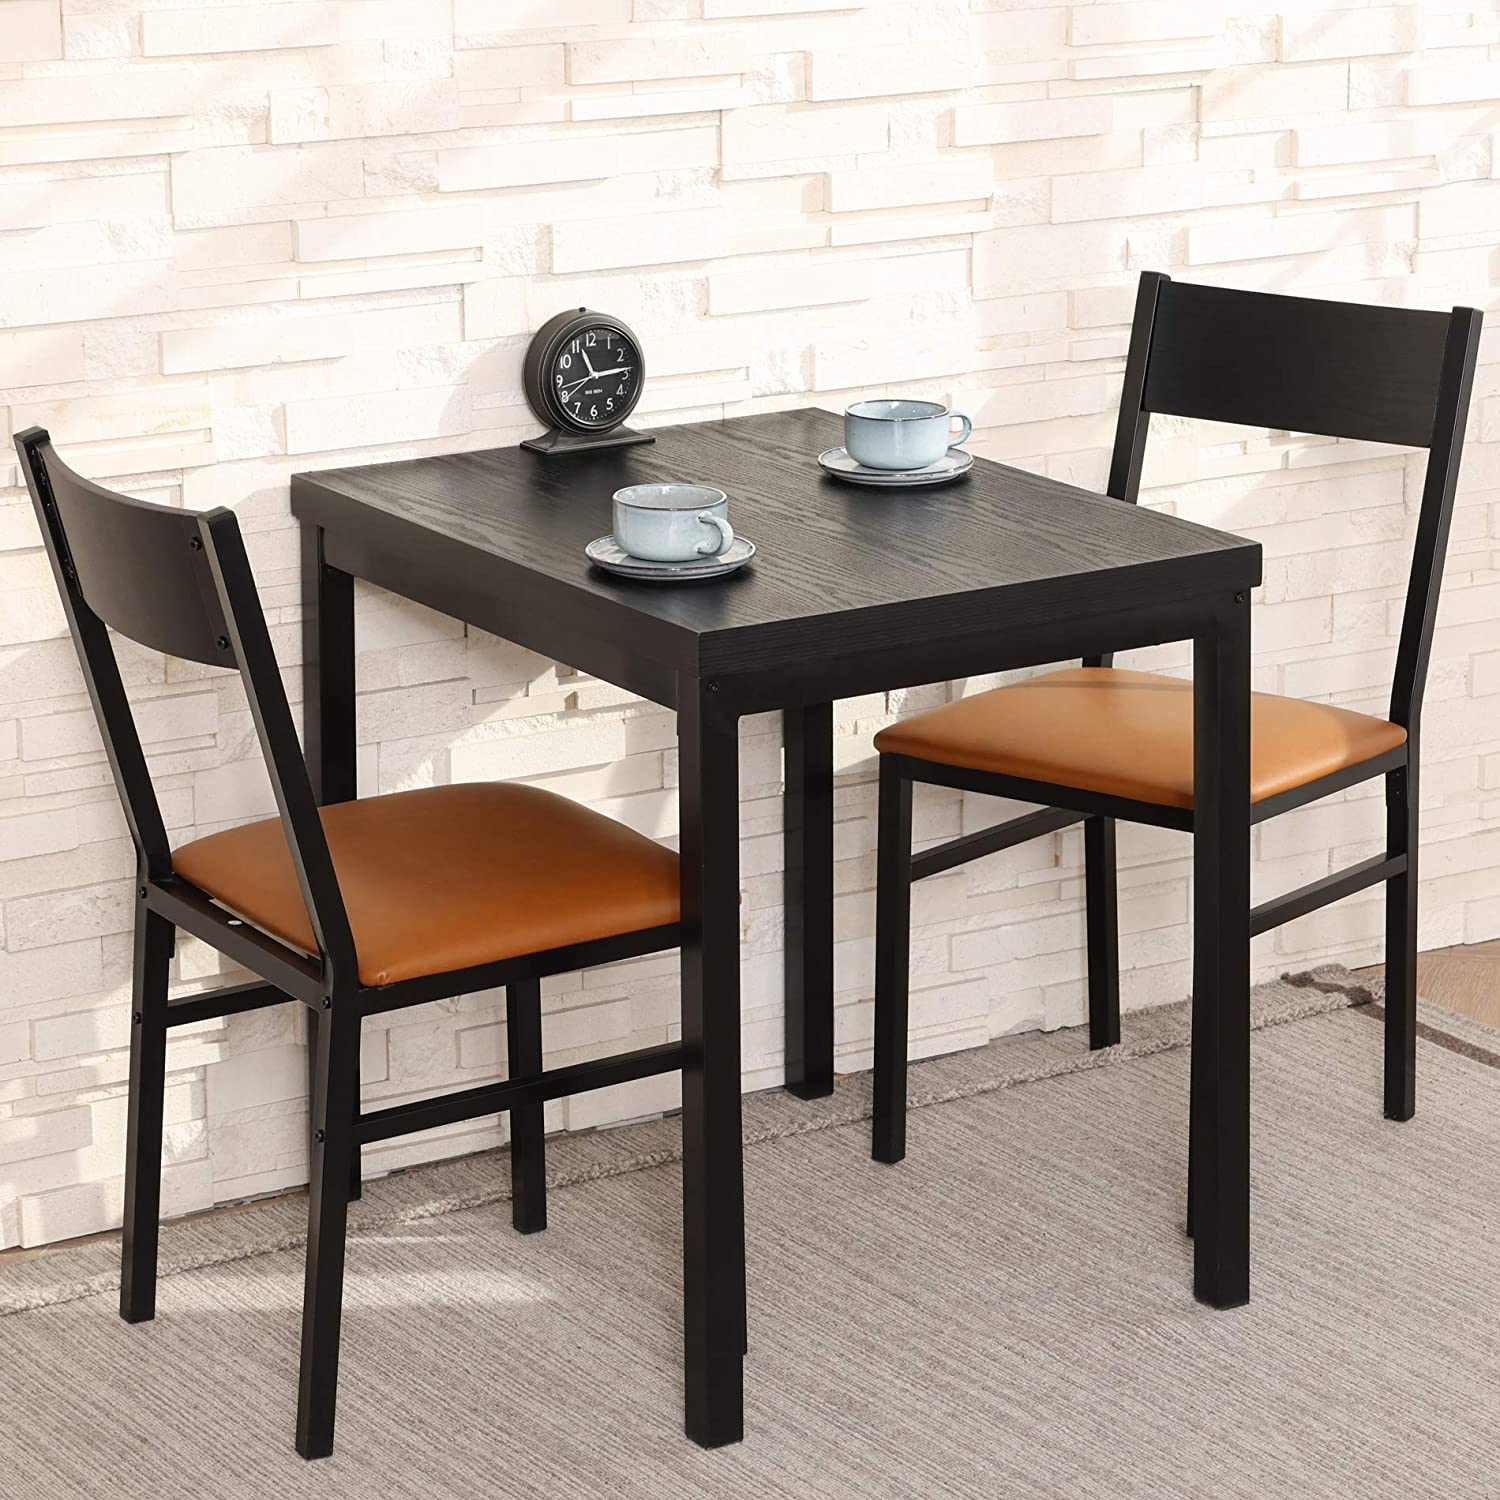 HOMURY 9 Piece Dining Table Set with Cushioned Chairs, Modern Counter  Height Dinette Set, Small Kitchen Table Set with 9 Table and 9 Chairs for  Dining ...